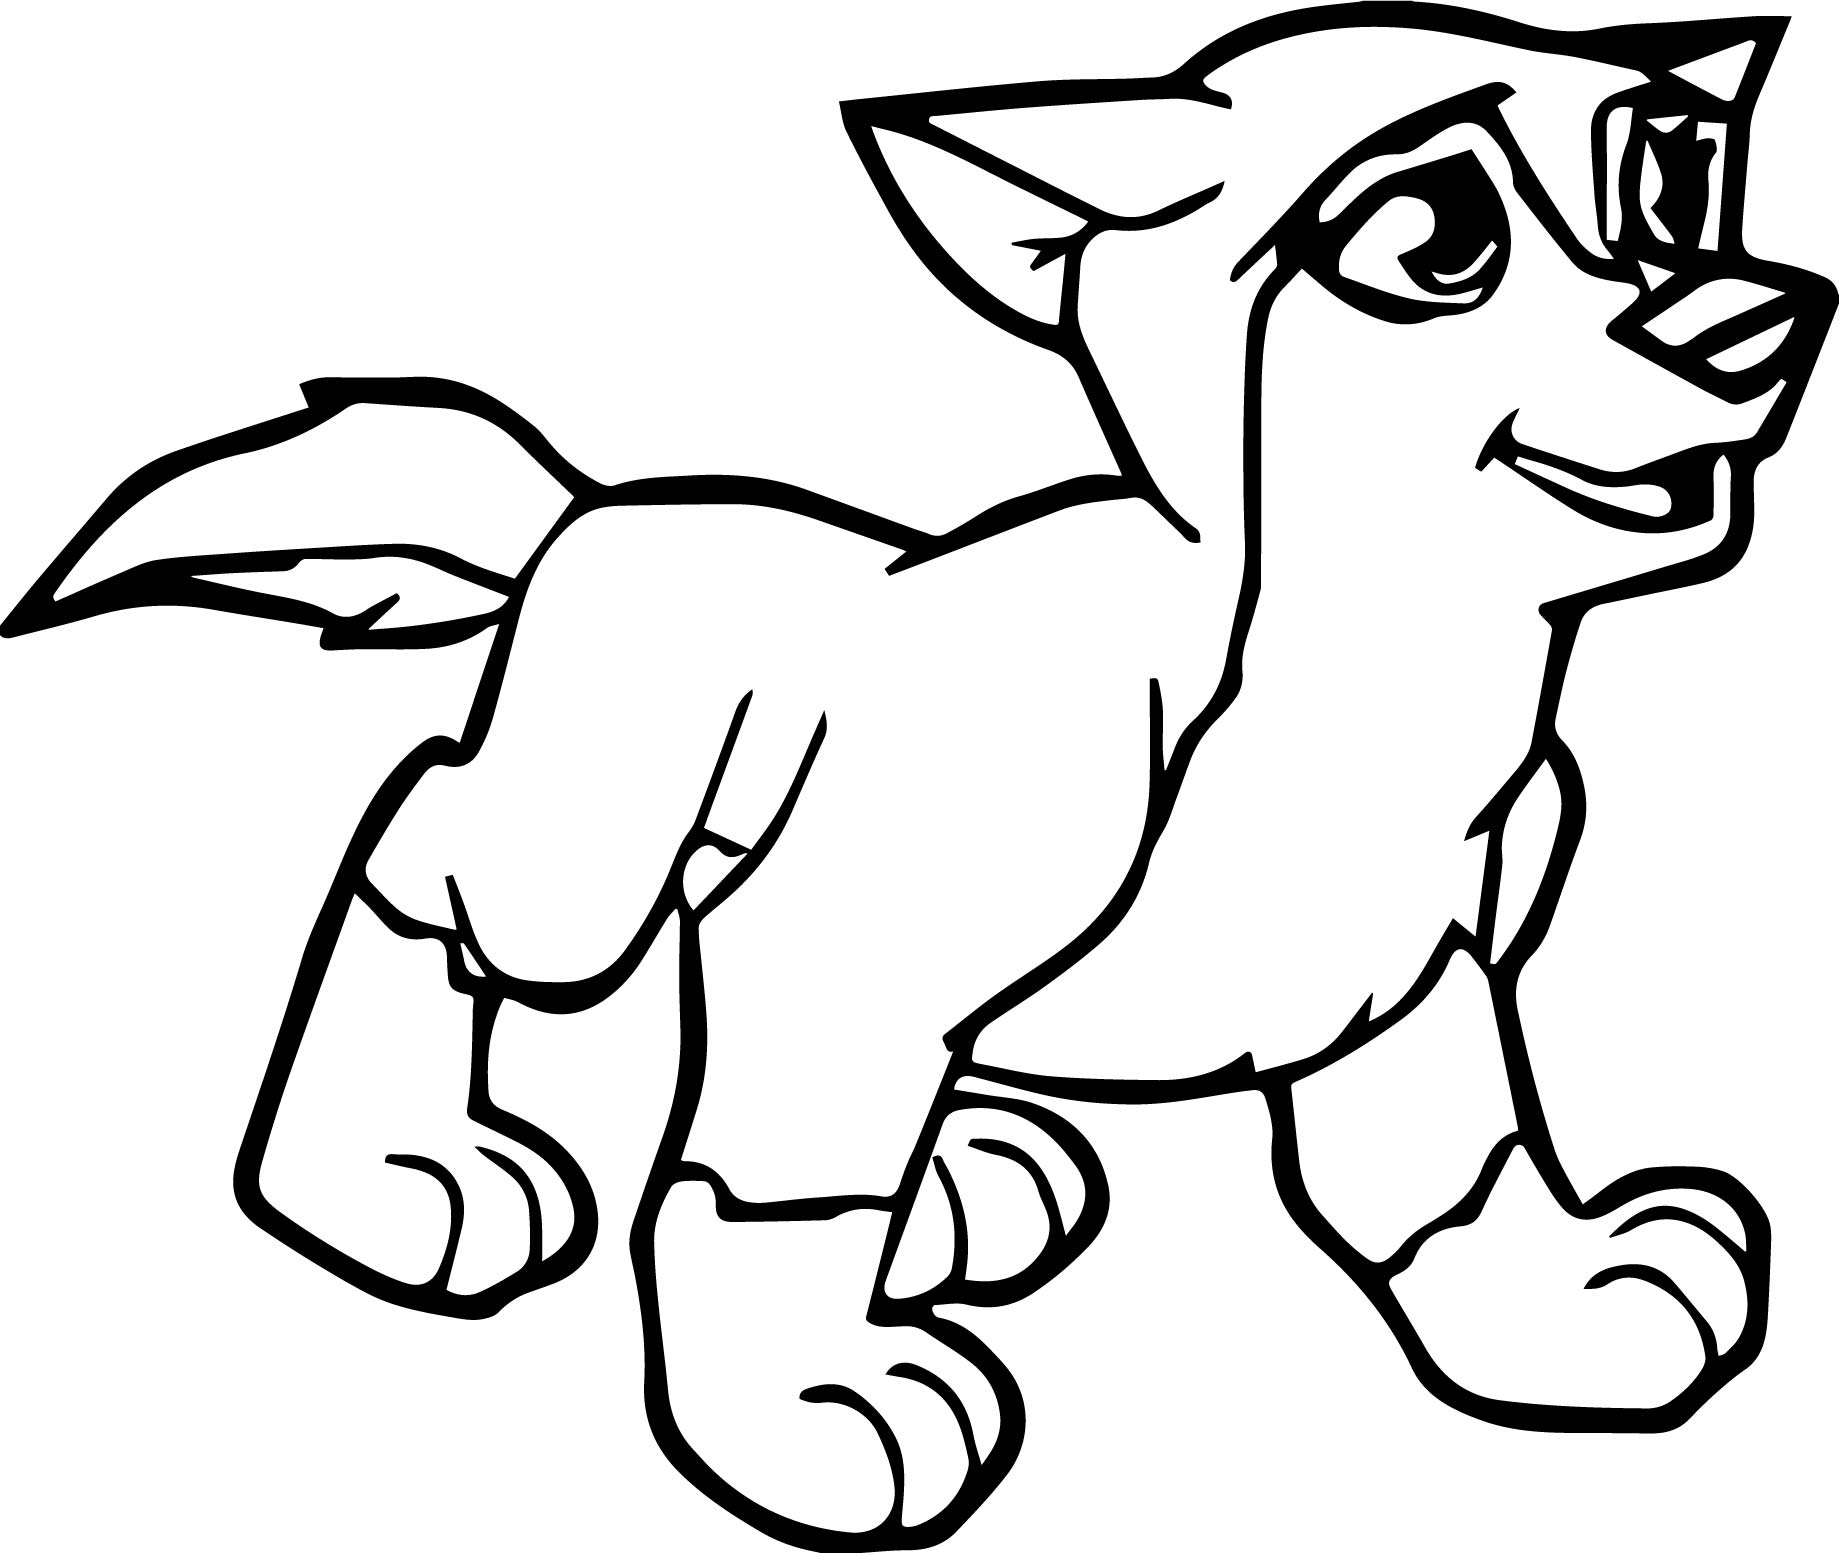 Wolf Coloring Page Young Alpha and Omega Wolf Coloring Page Collection Of Wolf Coloring Pages Elegant Free Printable Wolf Coloring Pages for Download